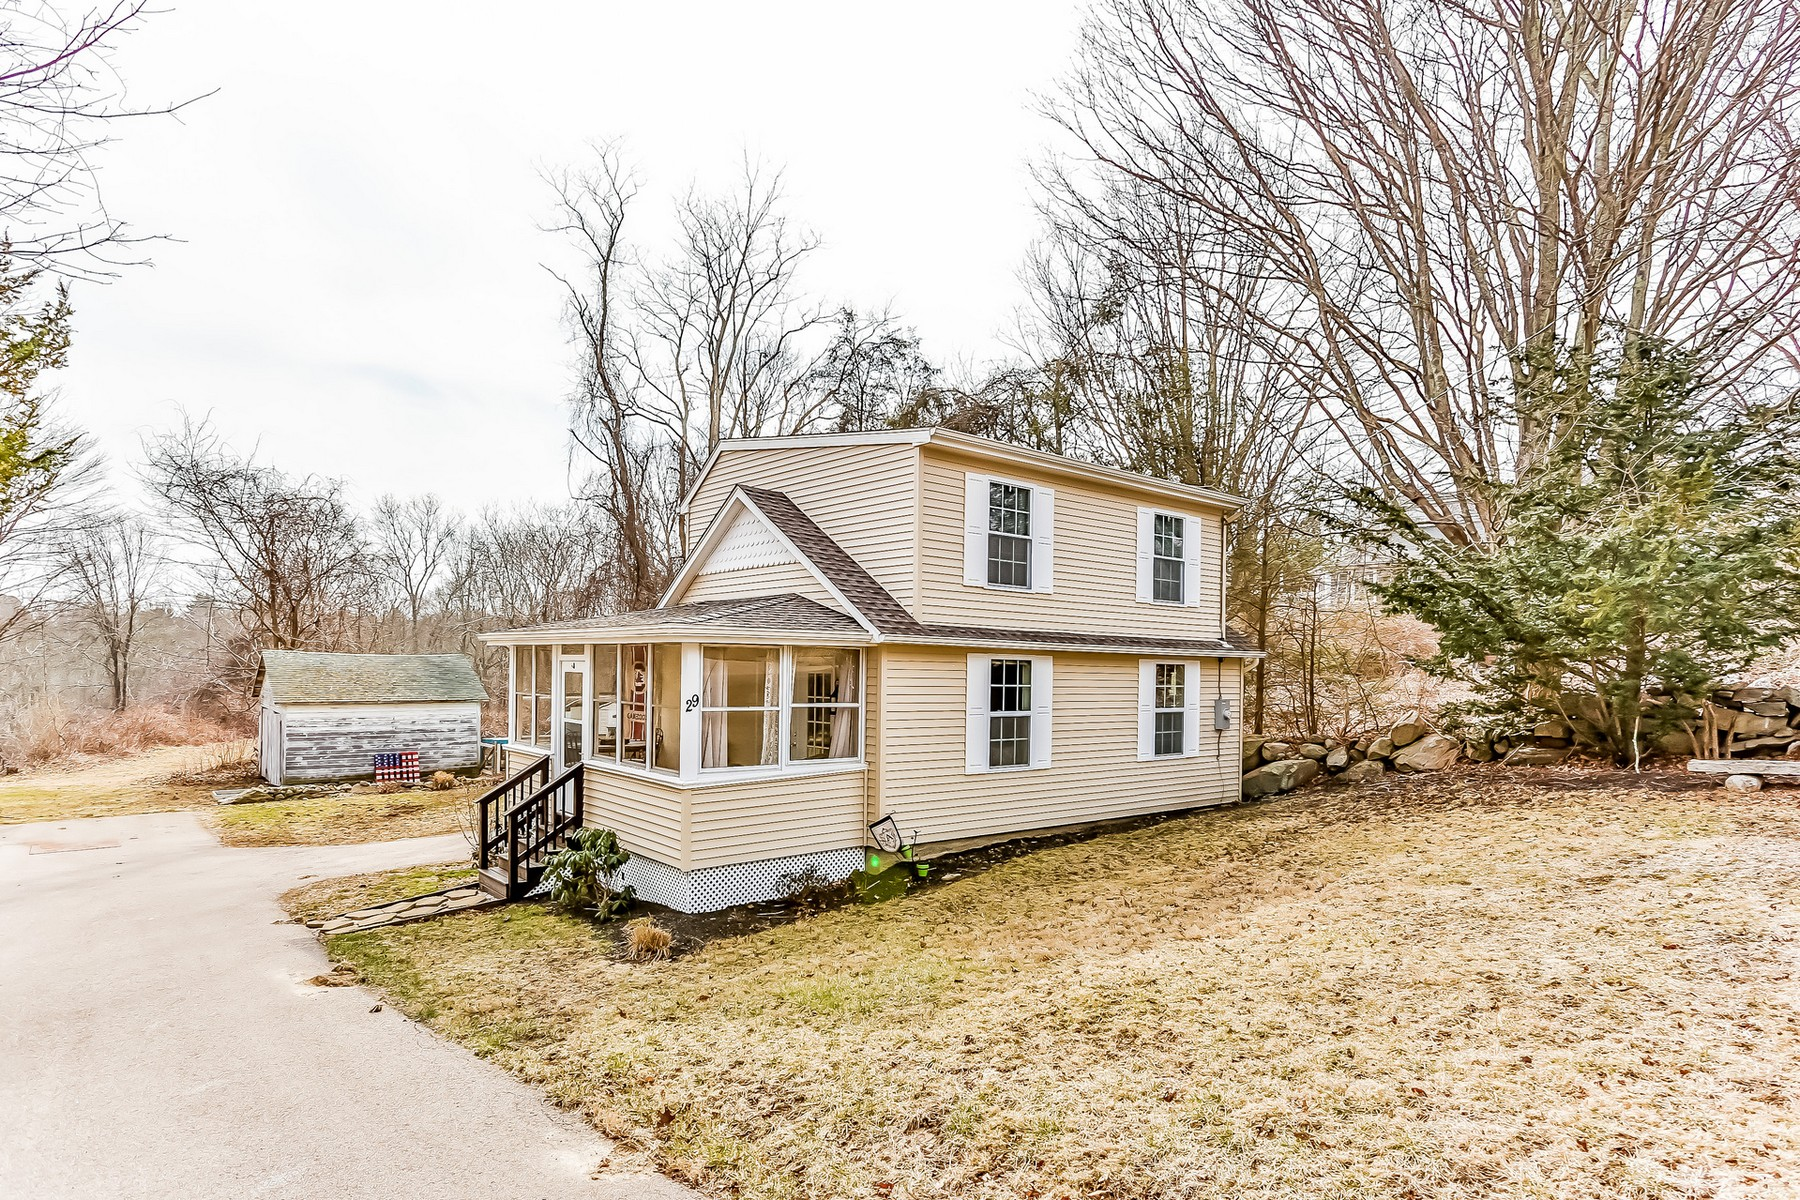 Single Family Home for Sale at Completely Renovated Top to Bottom 29 Route 27 Groton, Connecticut, 06355 United States